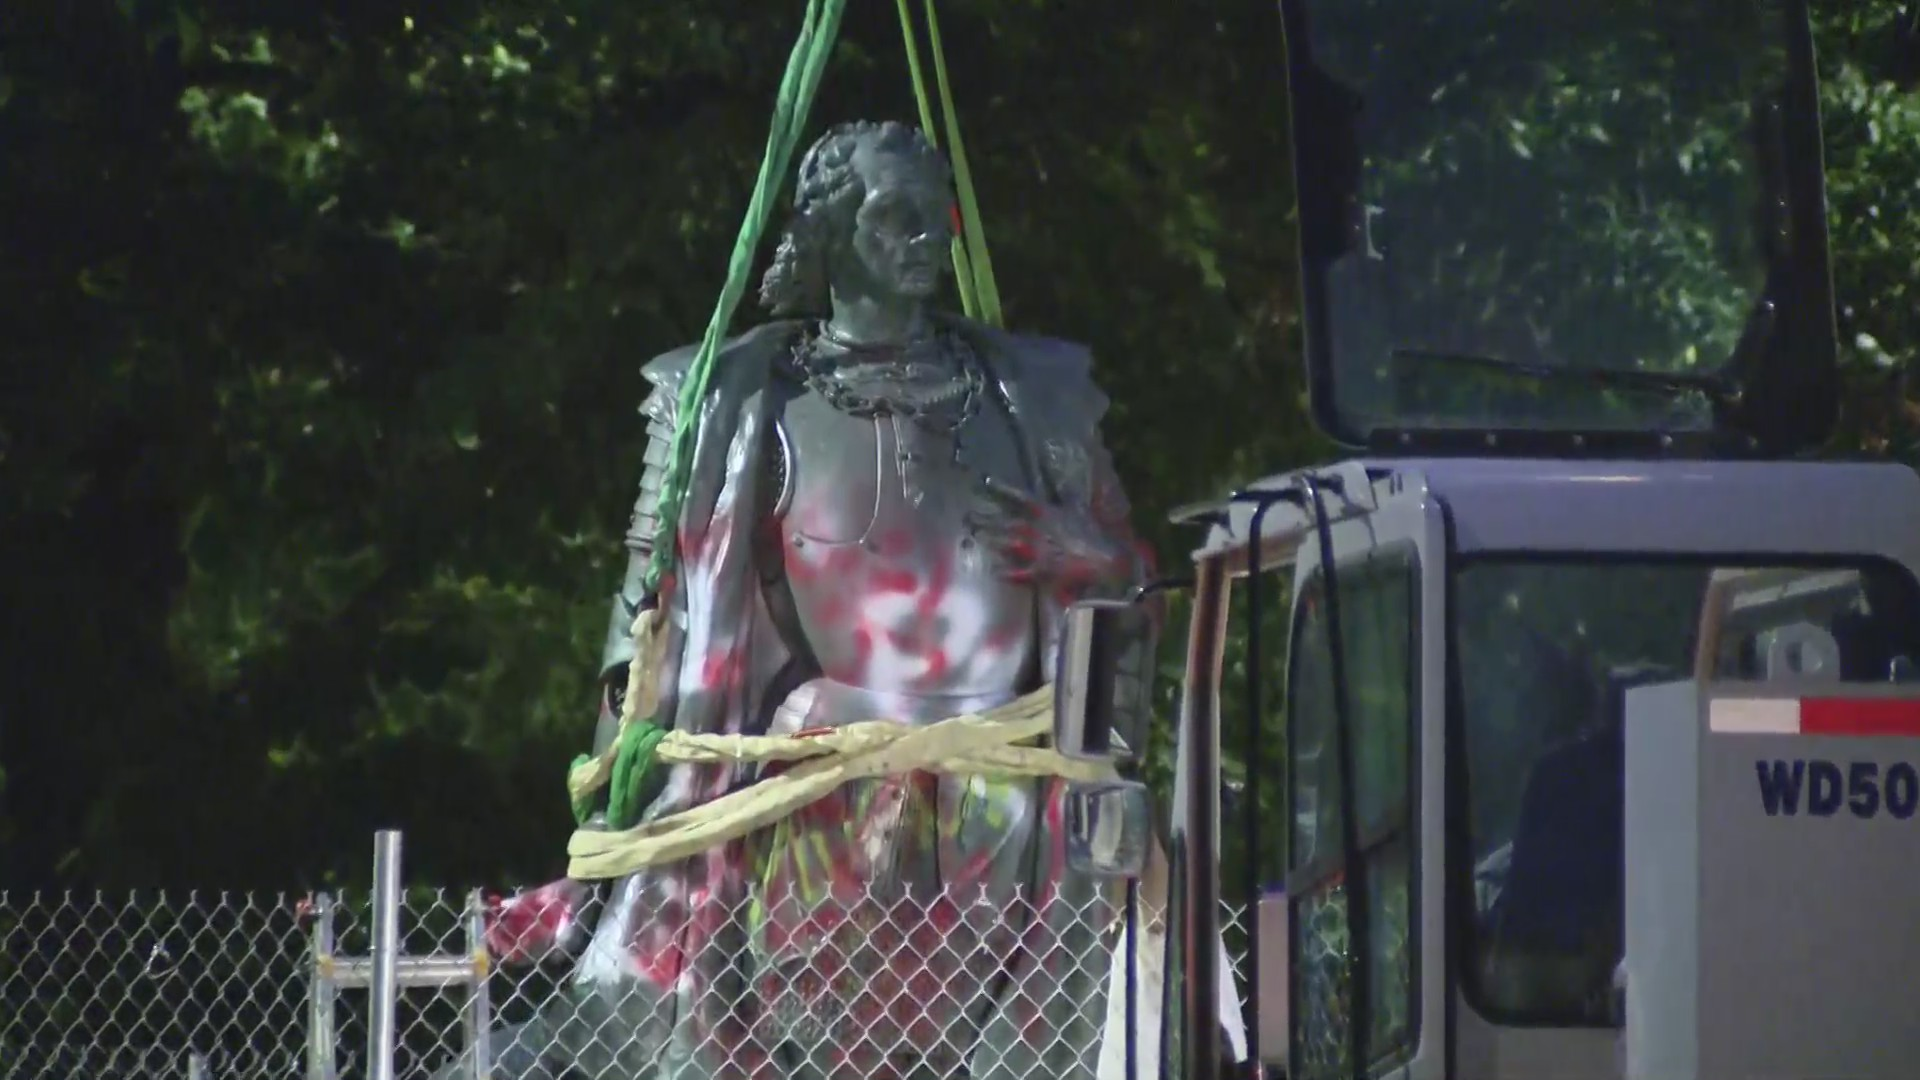 Mayor Lightfoot has statues of Christopher Columbus removed